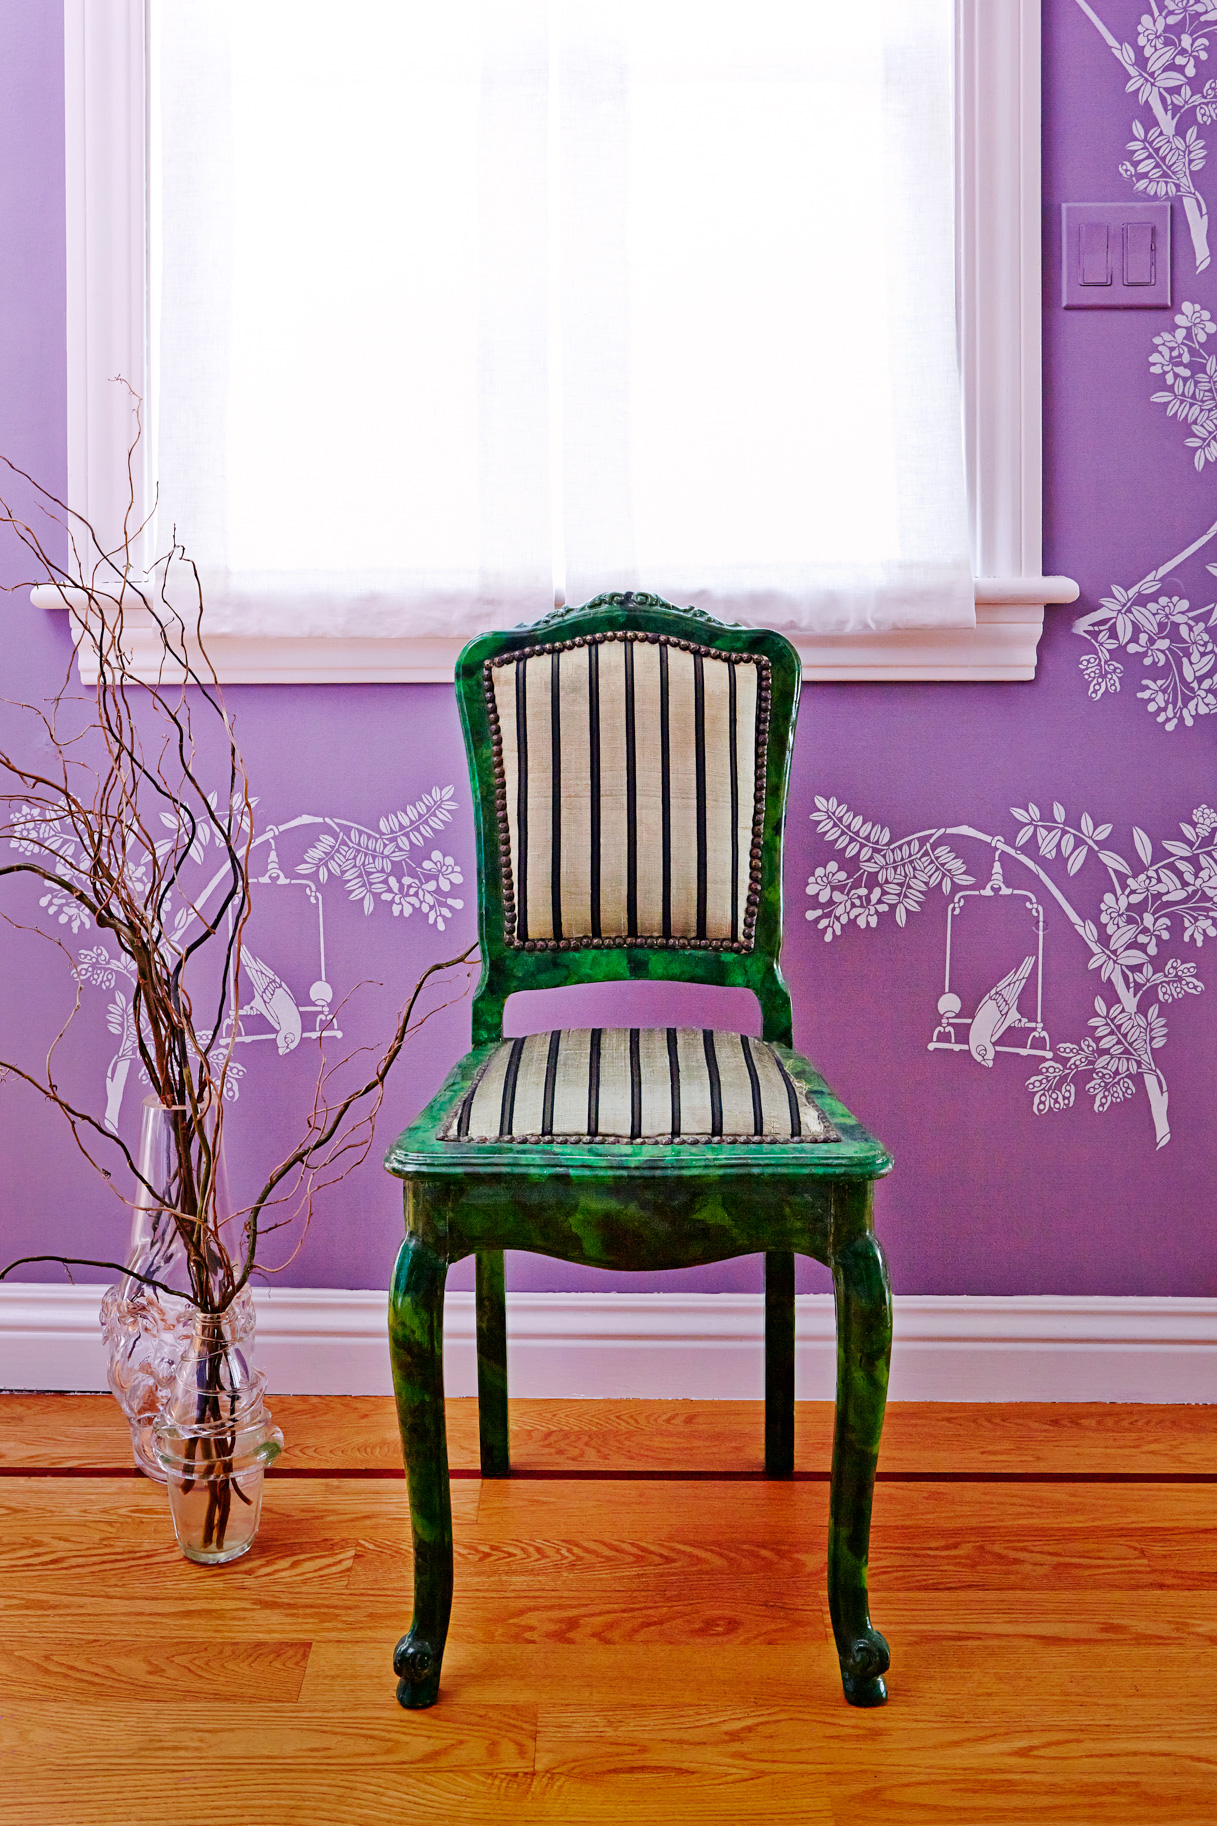 Chinoiserie stencil pattern, Stencil Library is backdrop for petite antique chair, One King's Lane.